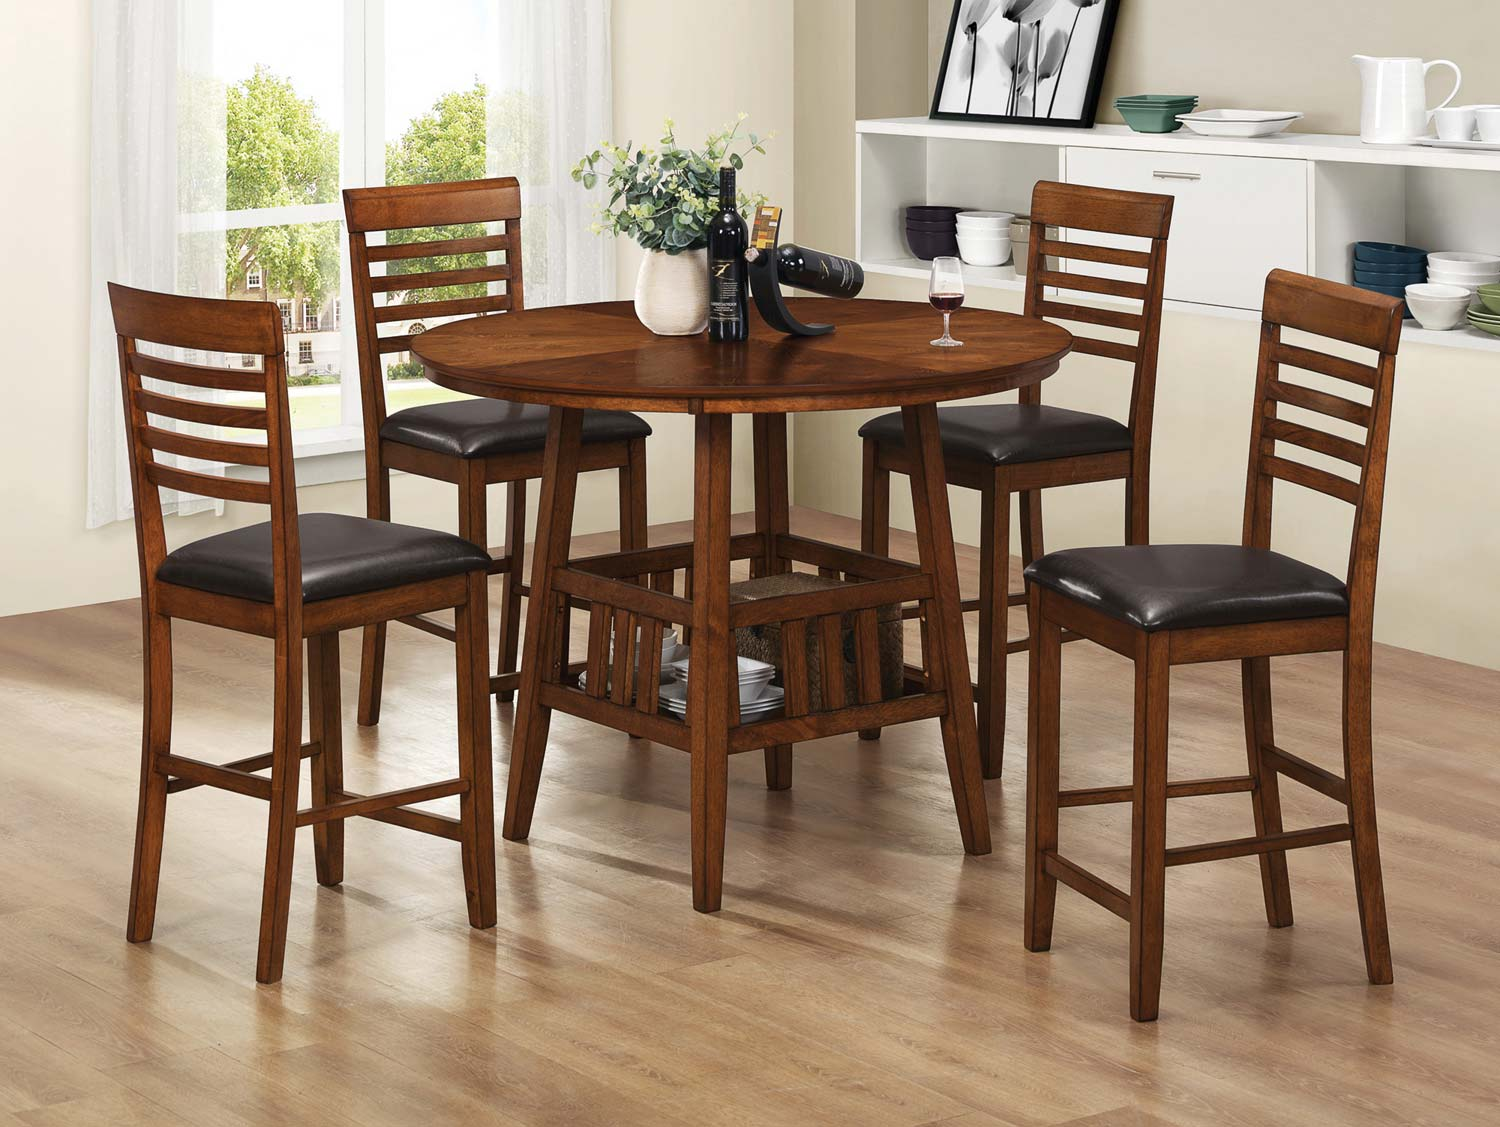 Coaster Knoxville Counter Height Dining Set - Oak